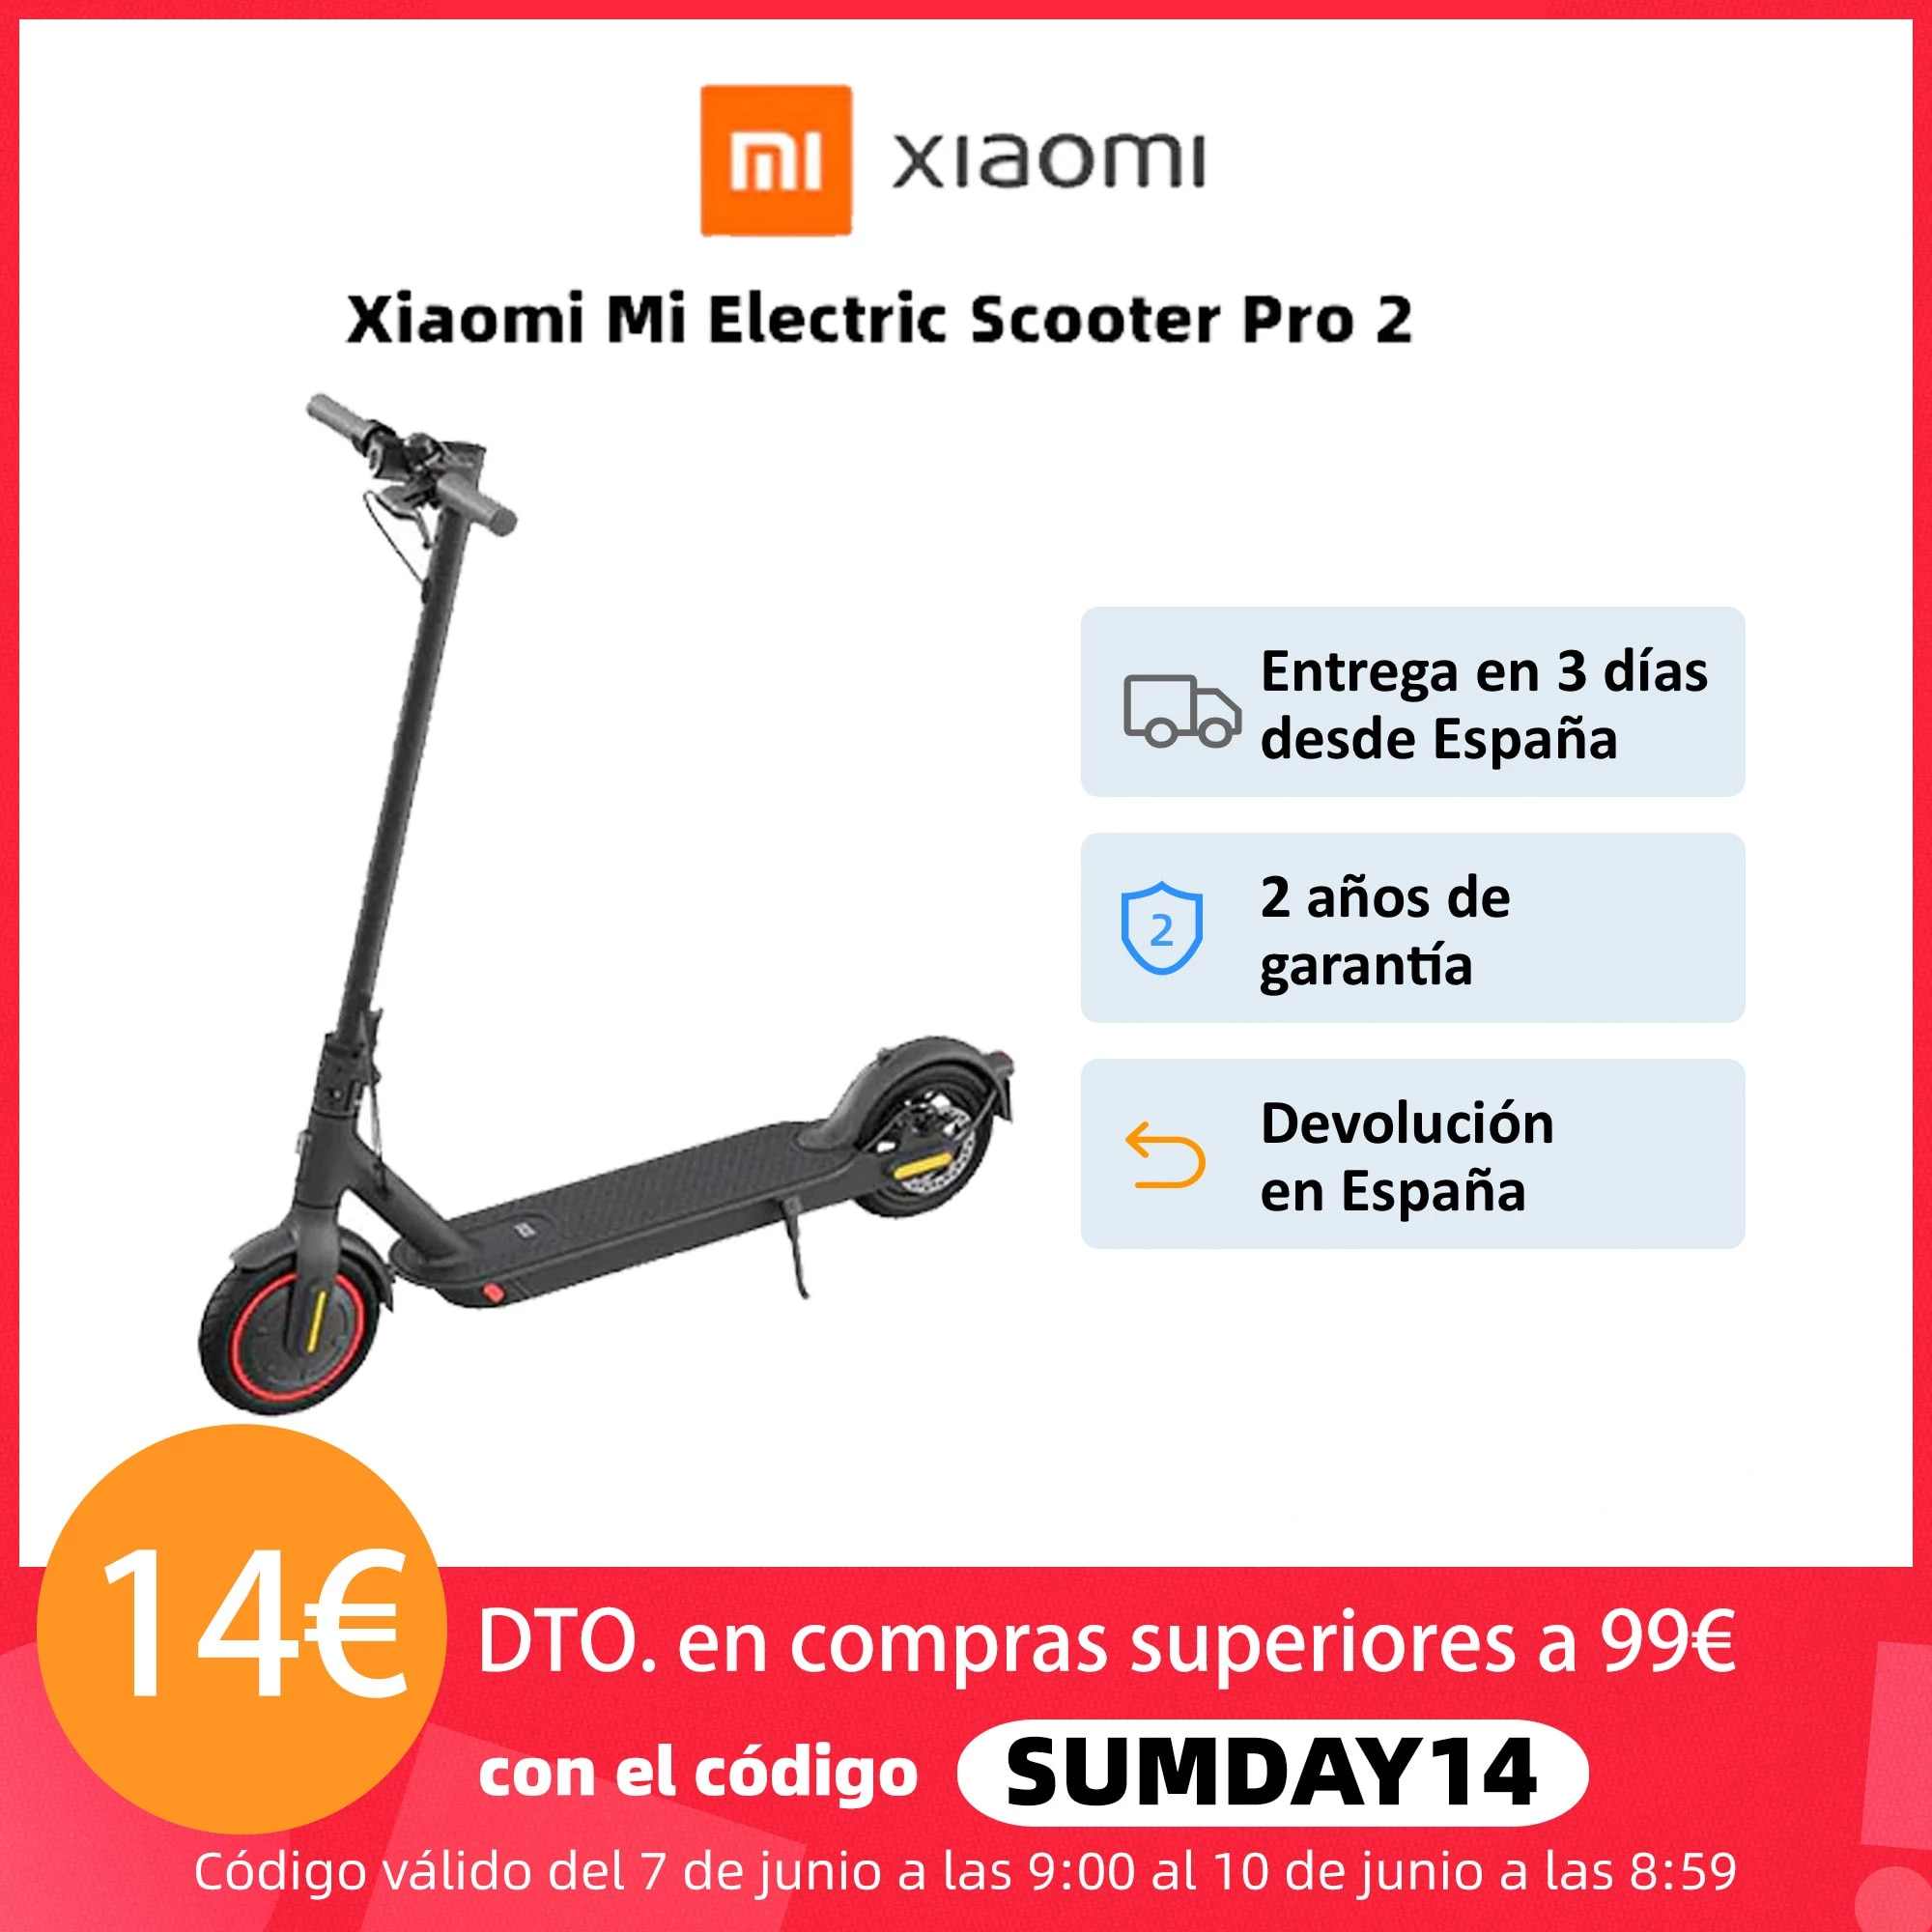 Xiaomi Mi Electric Scooter Pro 2 and Mercedes Edition